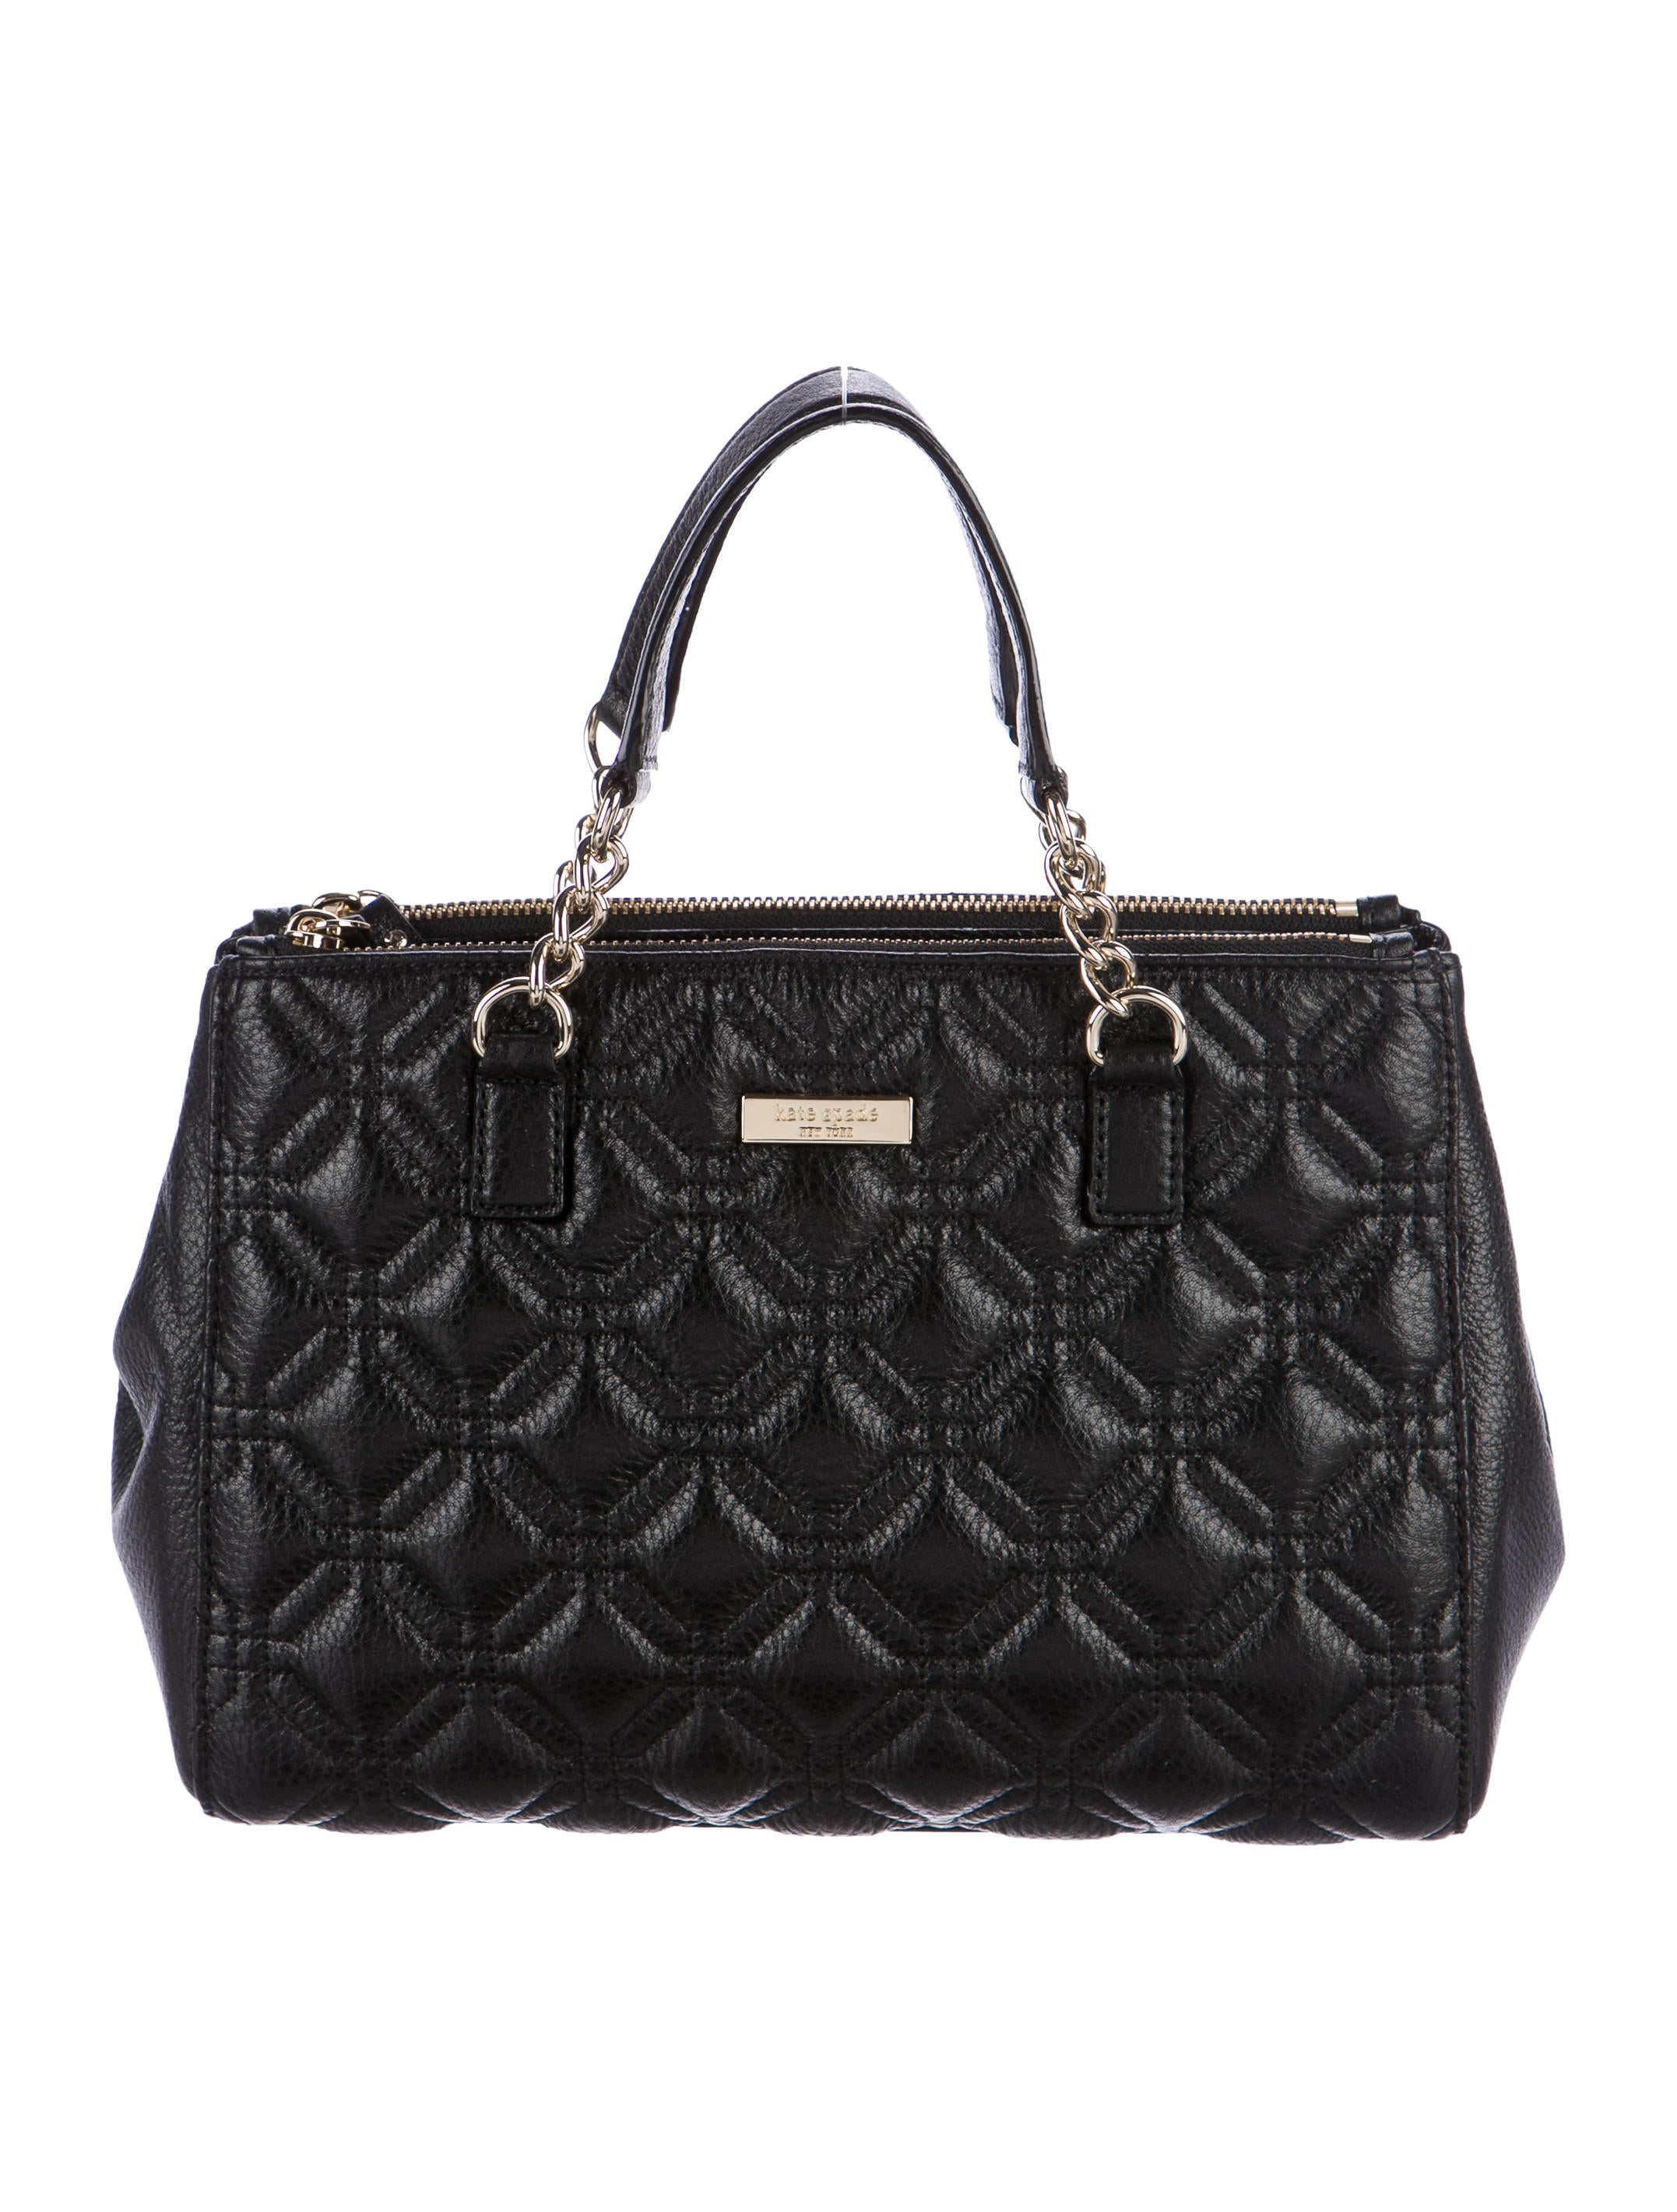 Kate Spade New York Quilted Leather Tote Handbags